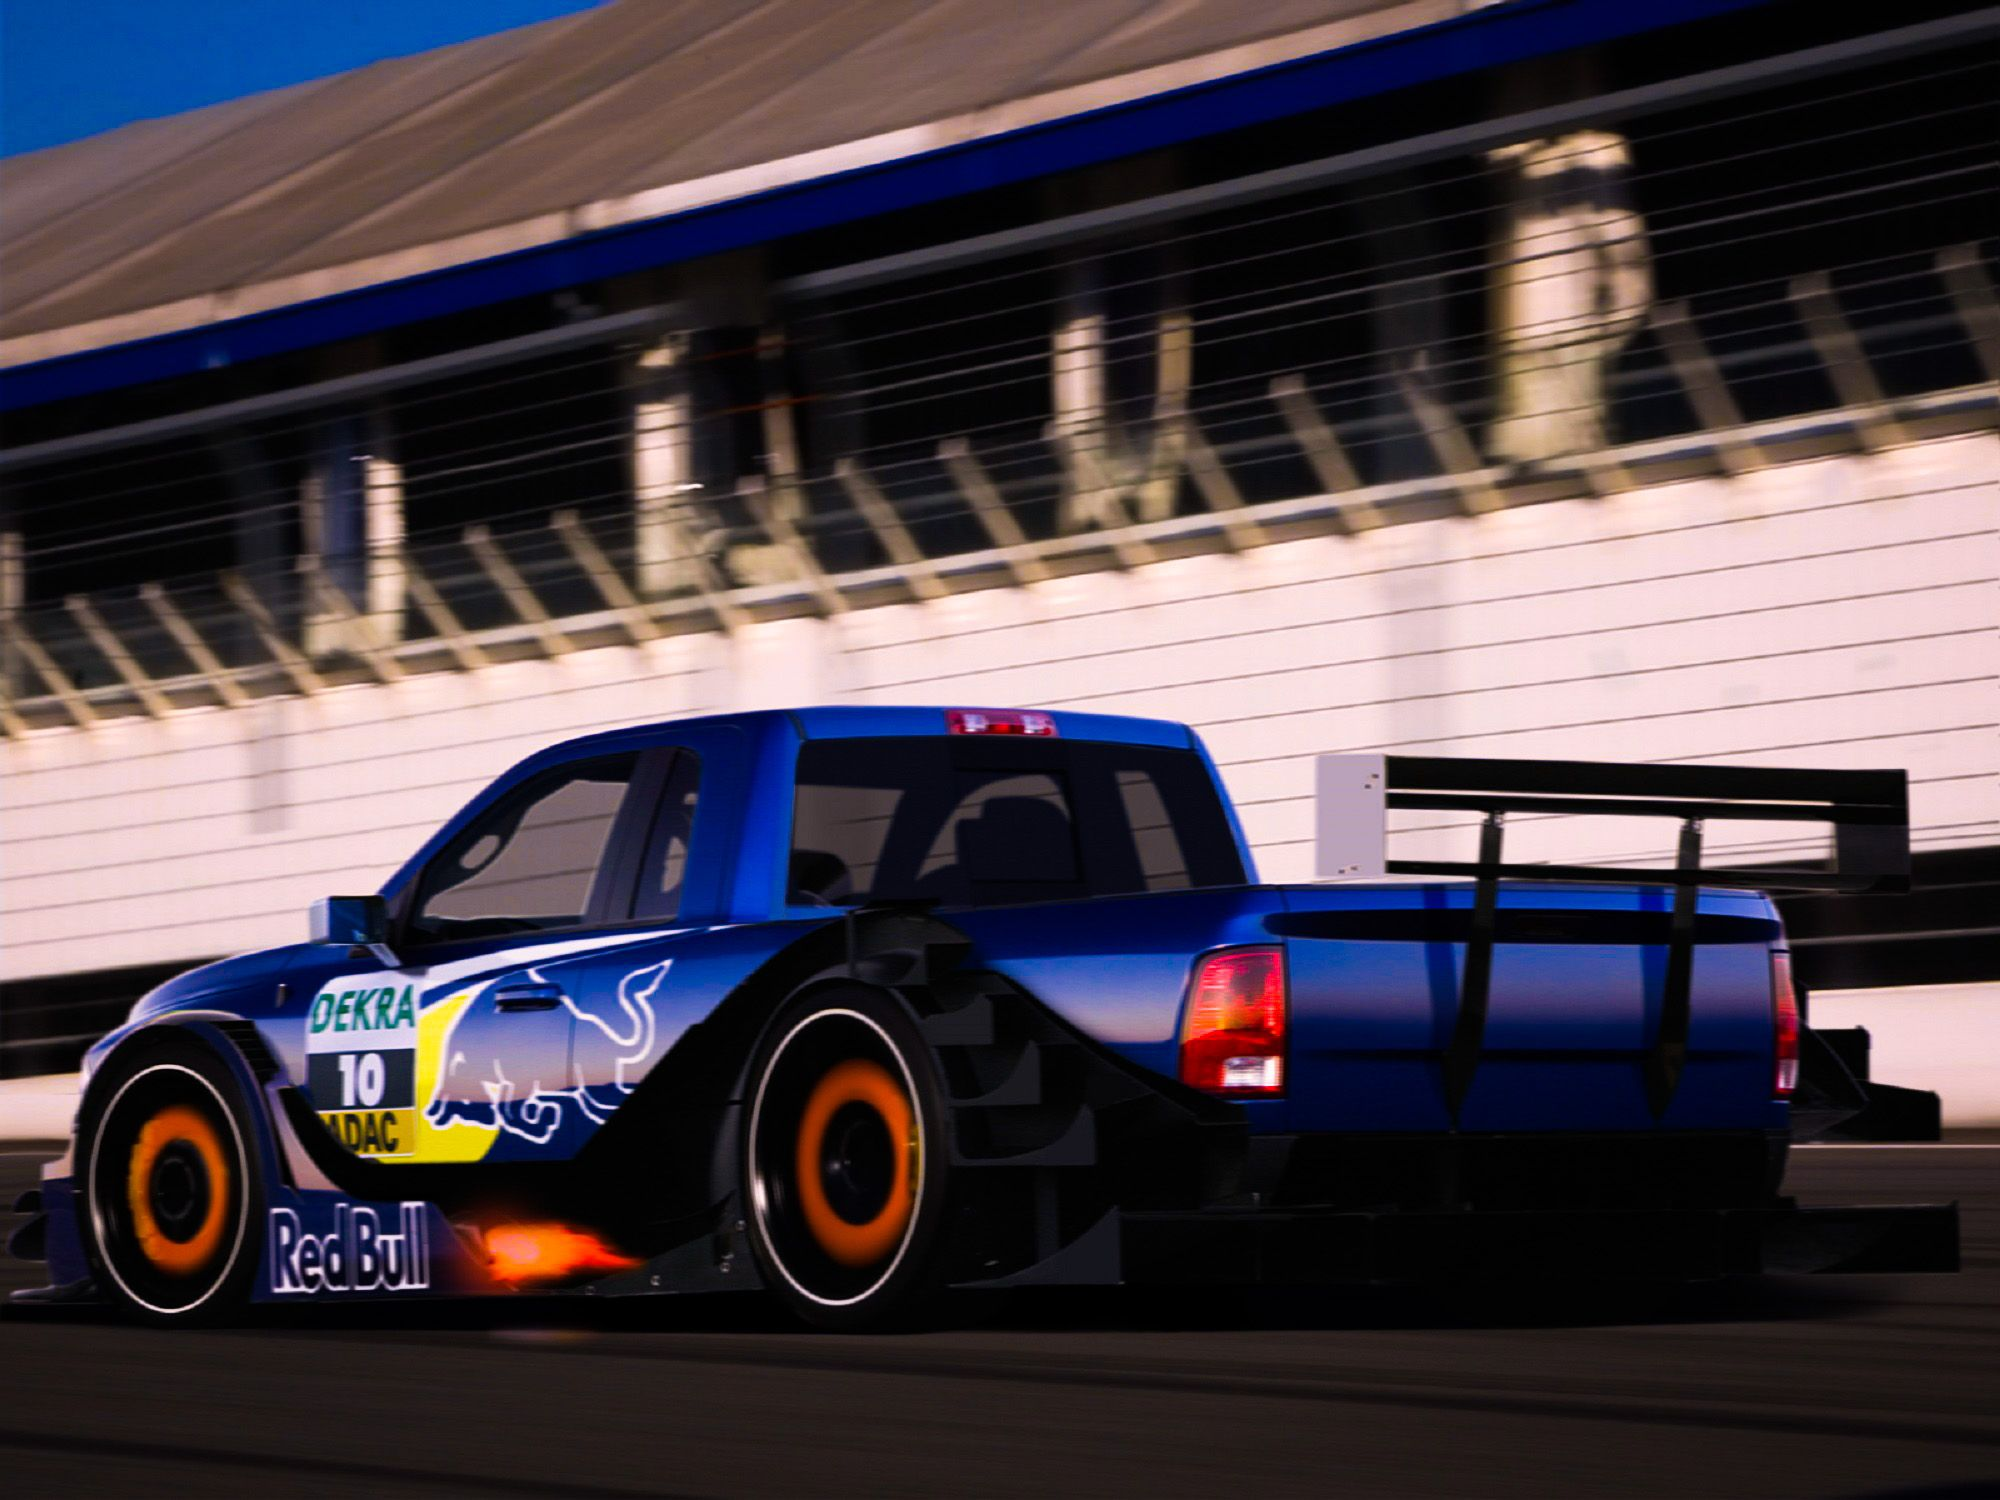 Dodge ram sport pick up racing by degraa fm httpdegraafm dodge ram sport pick up racing by degraa fm httpdegraafm sciox Image collections